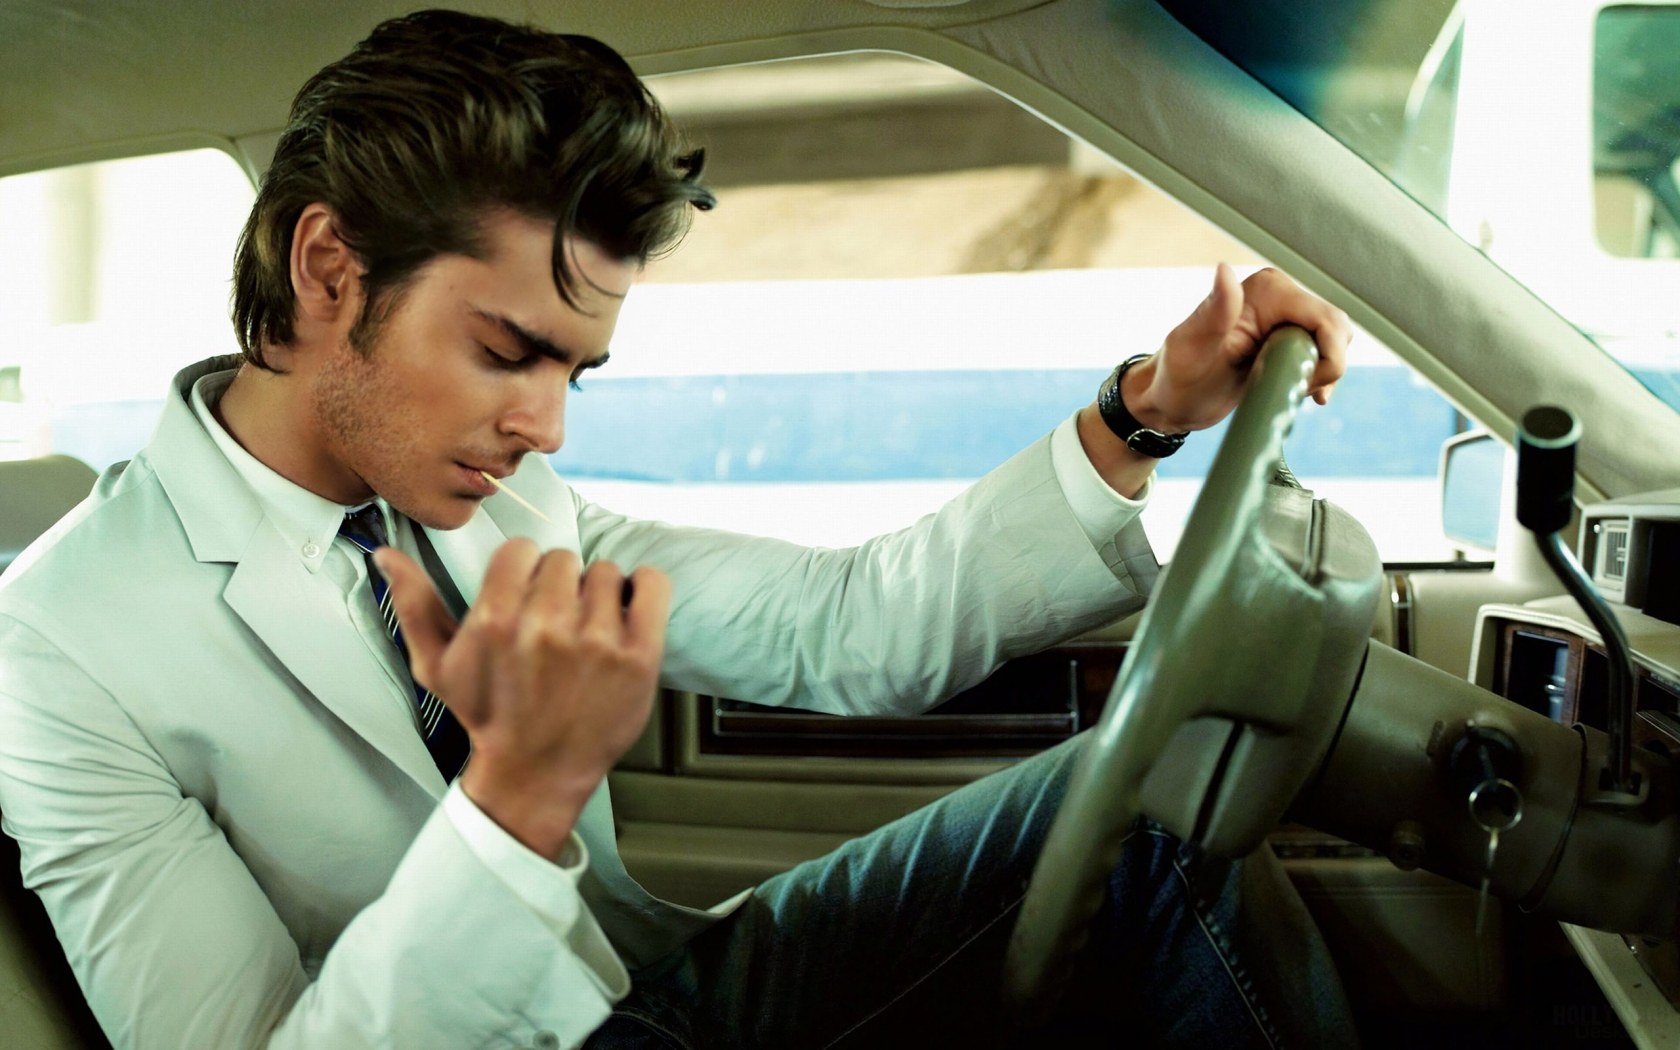 Zac Efron Rock and Roll Style for 1680 x 1050 widescreen resolution